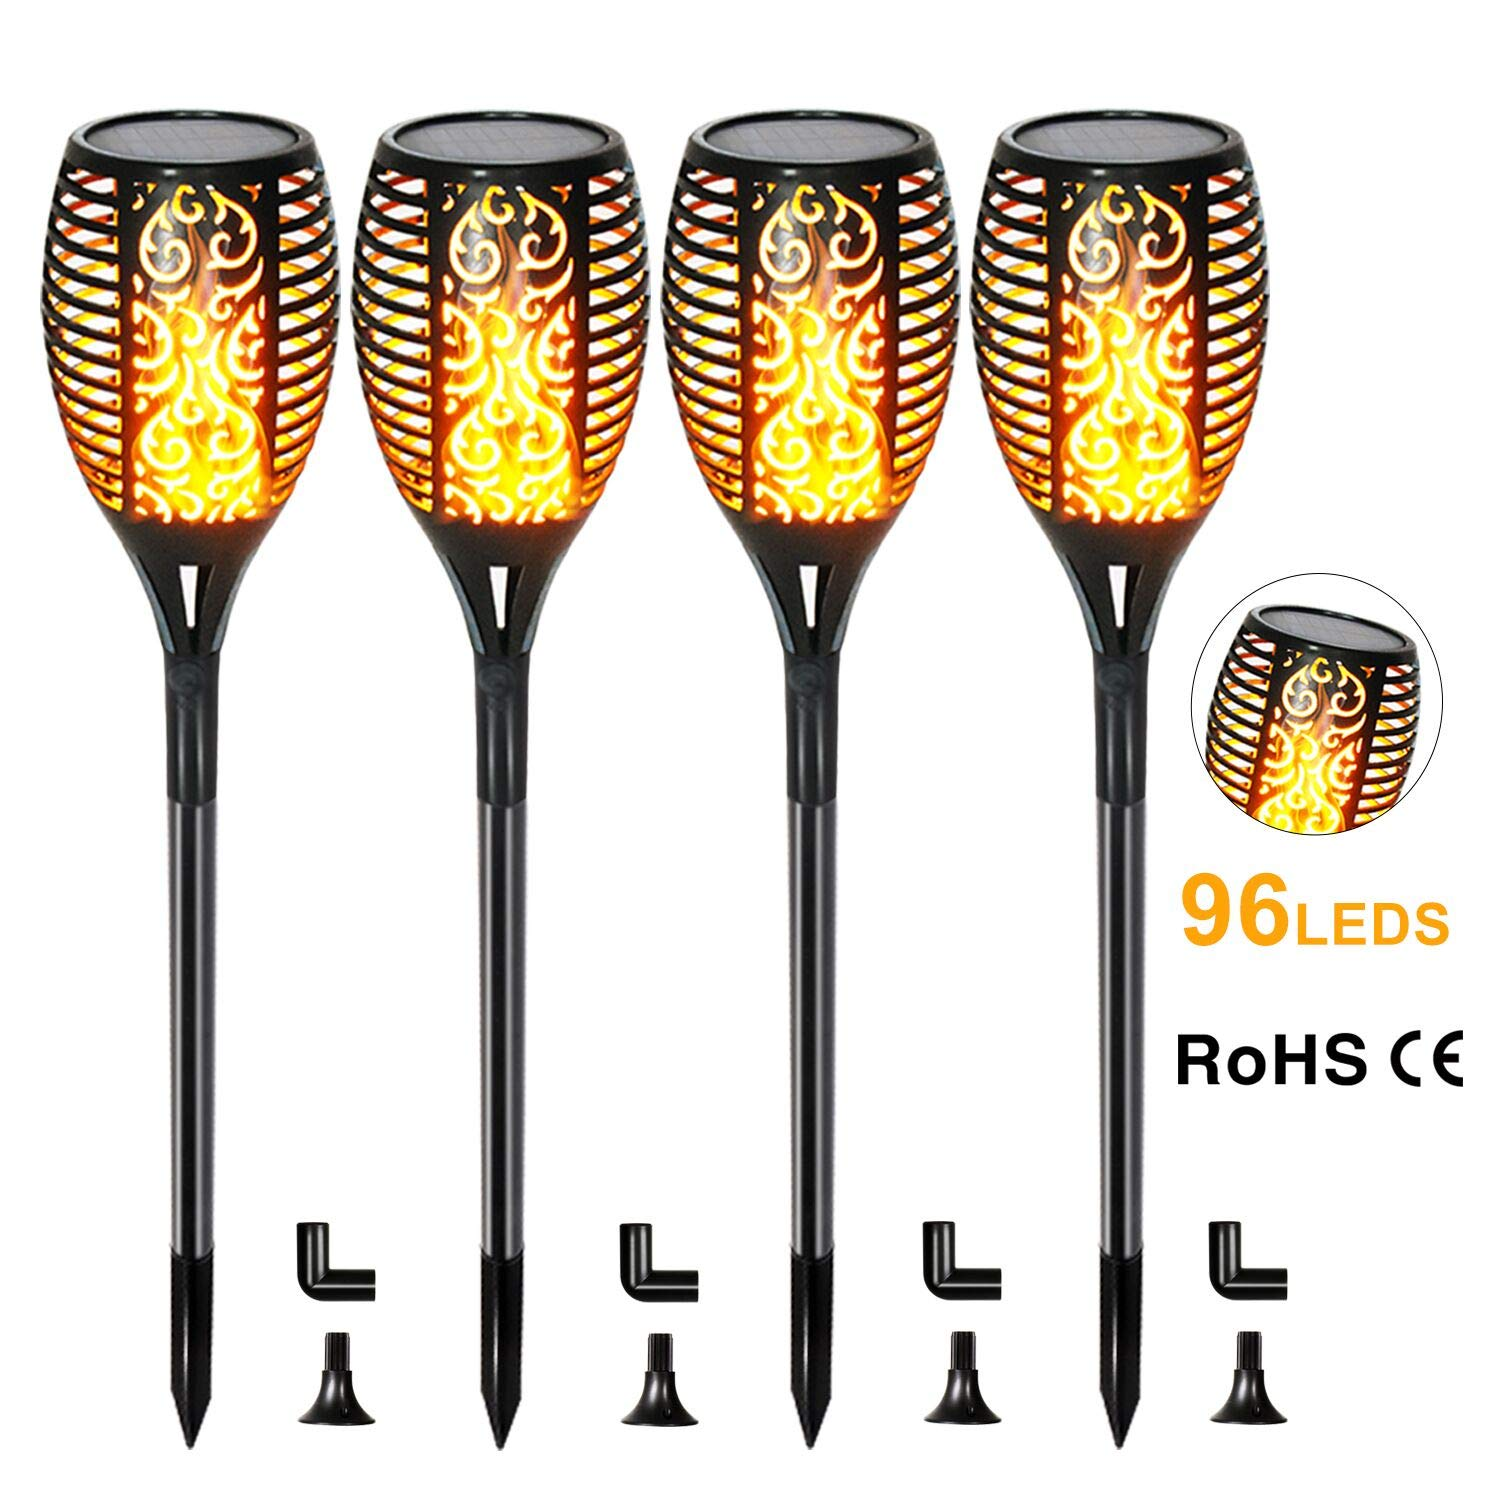 FUDESY 4-Pack Solar Torch Lights,Flickering Flames Lamp LED Outdoor Spotlights Landscape Decoration Lighting Dancing Flame Auto On/Off Dusk to Dawn Security Torches Light for Pathway Garden,FDS96PCS4